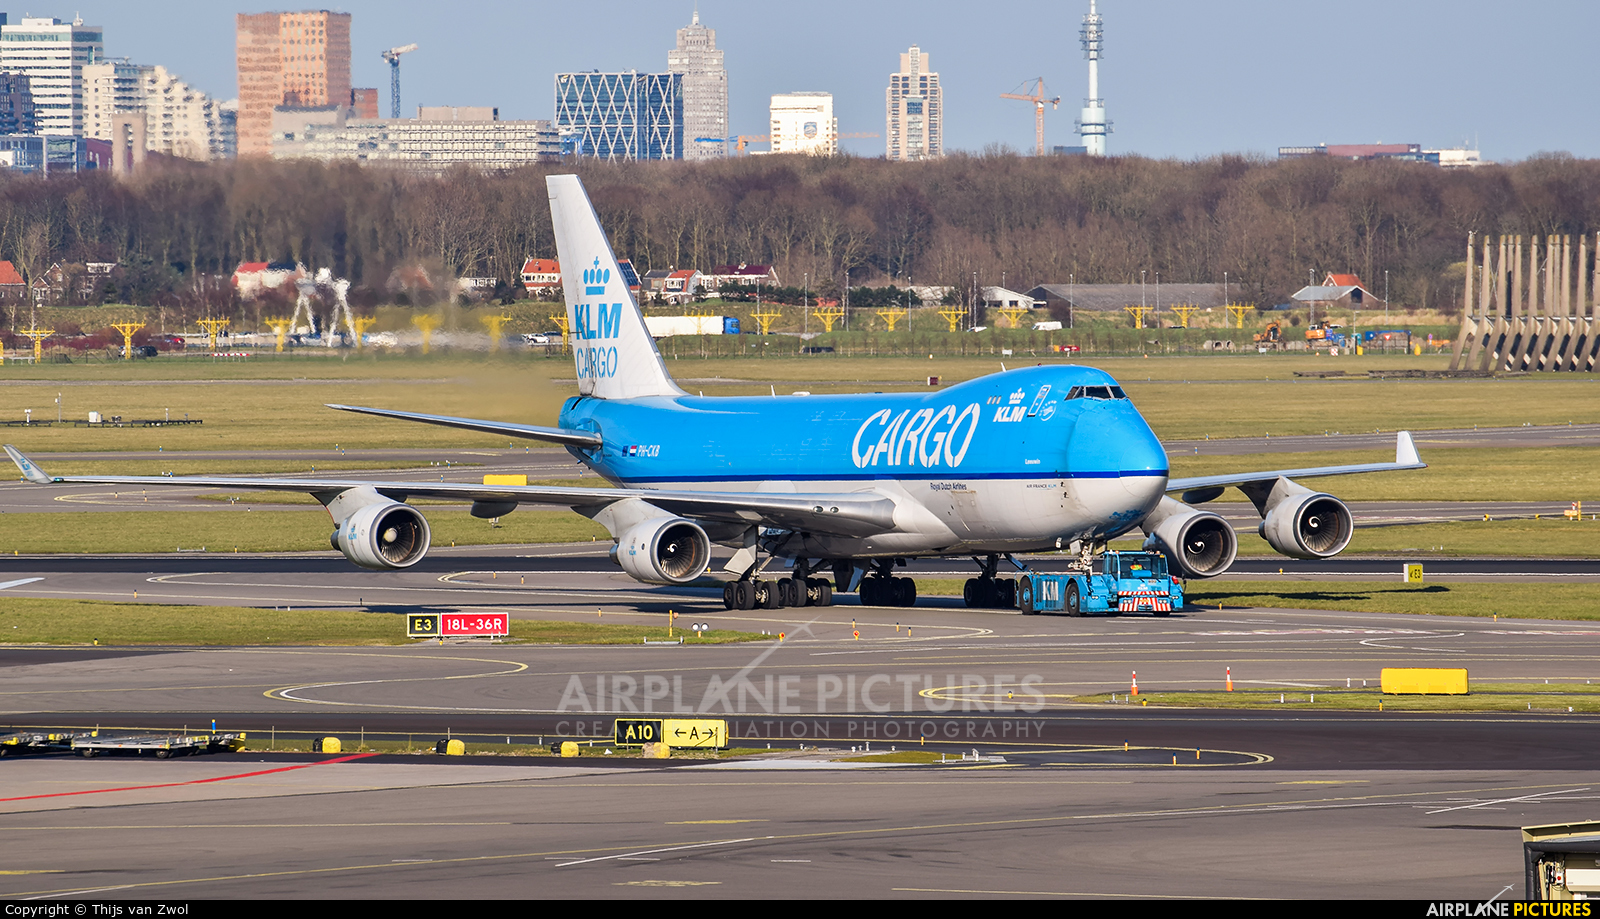 KLM Cargo PH-CKB aircraft at Amsterdam - Schiphol